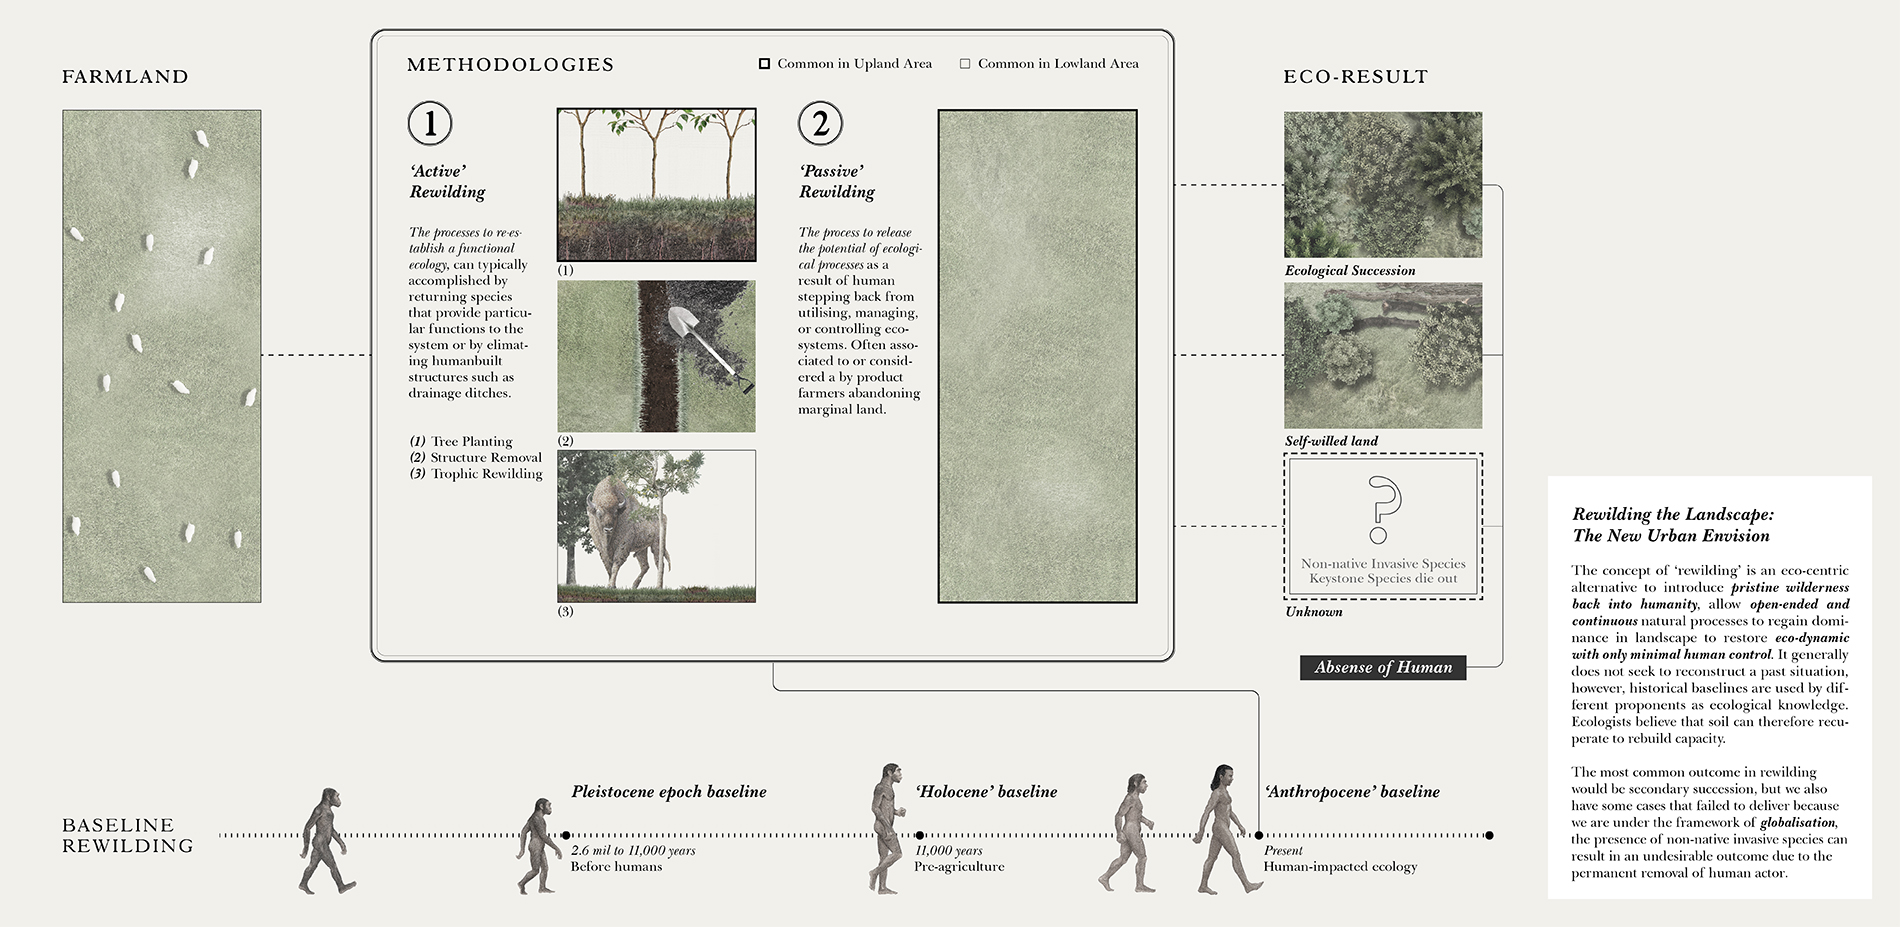 Rewilding the Landscape: The New Urban Envision